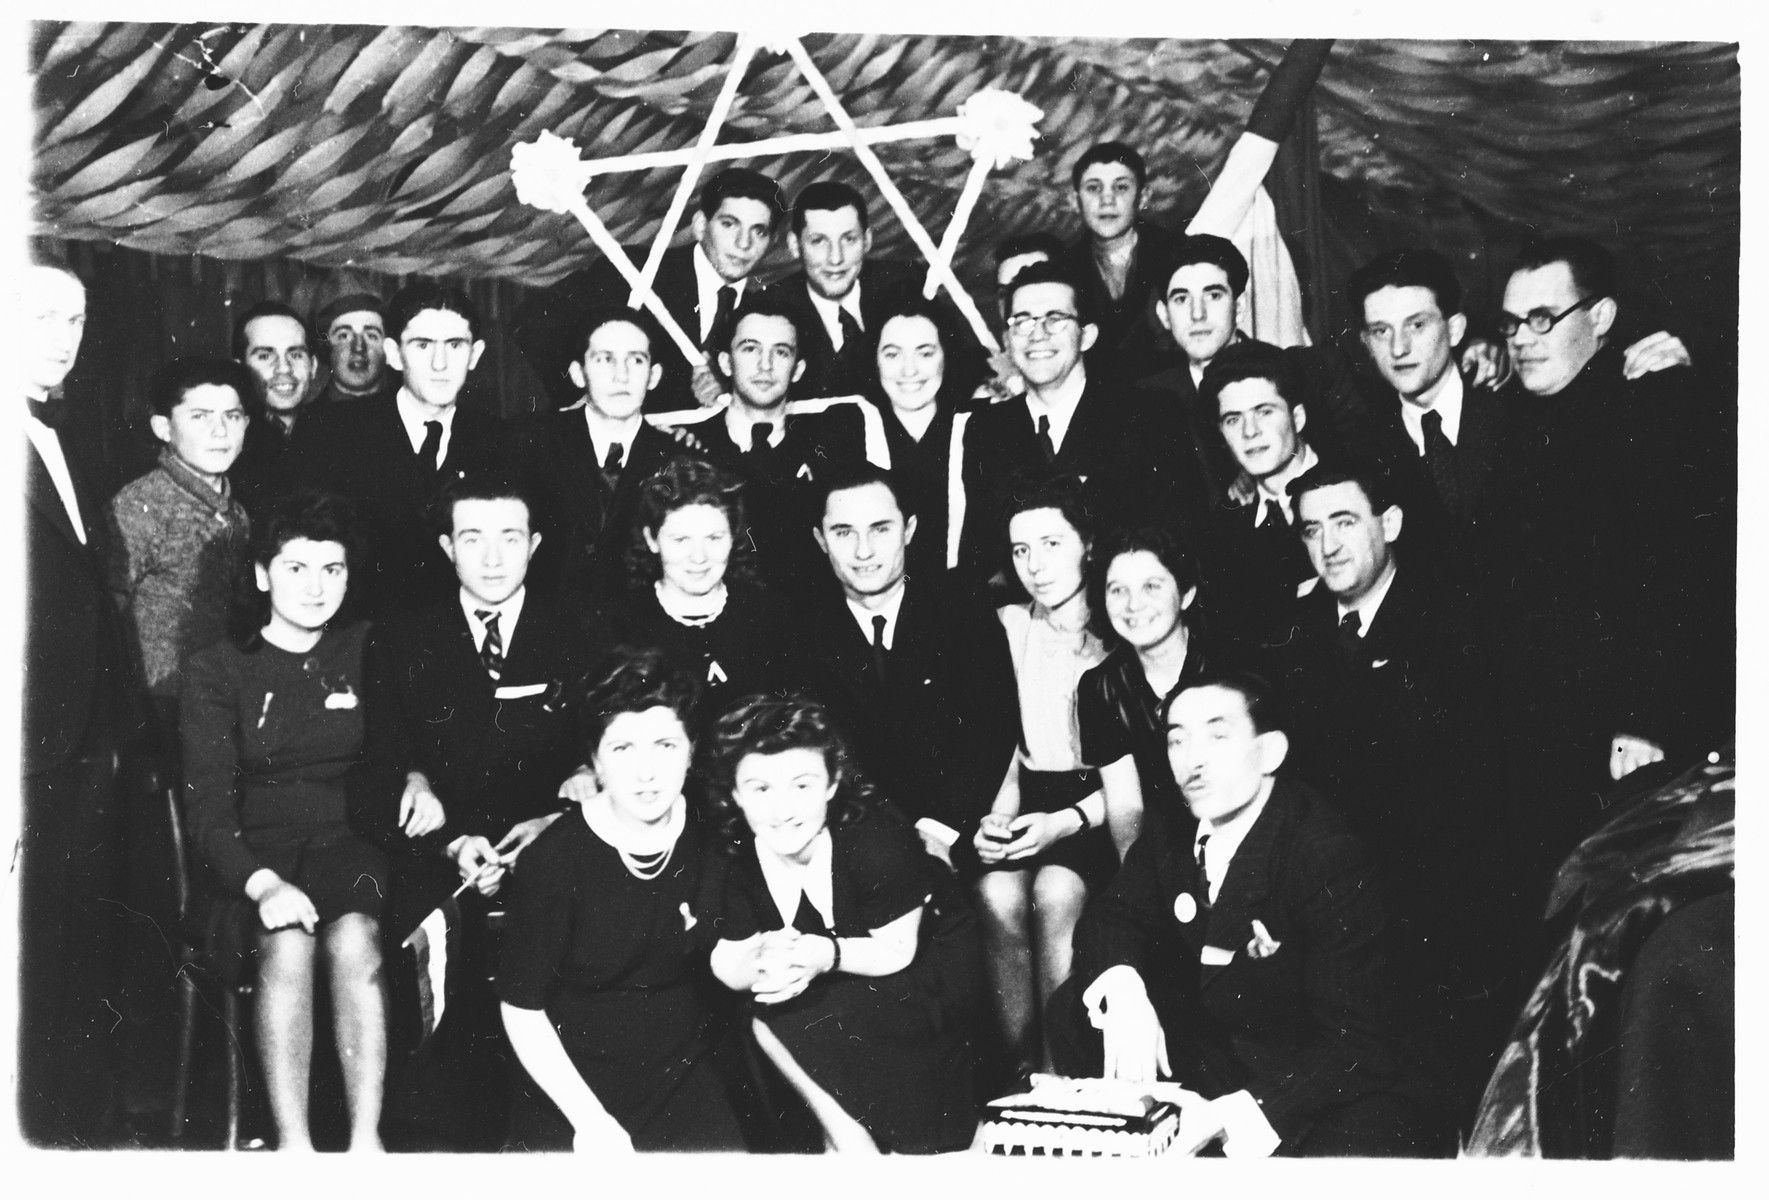 Members of Hashomer Hatzair Zionist youth in Mukachevo.  Symcha Weinberger is pictured third from the right in the middle row.  Also pictured are Izabella Jucowics Savarin (towards the bottom on the right side second row) and Imre Kolti (last person on the right).